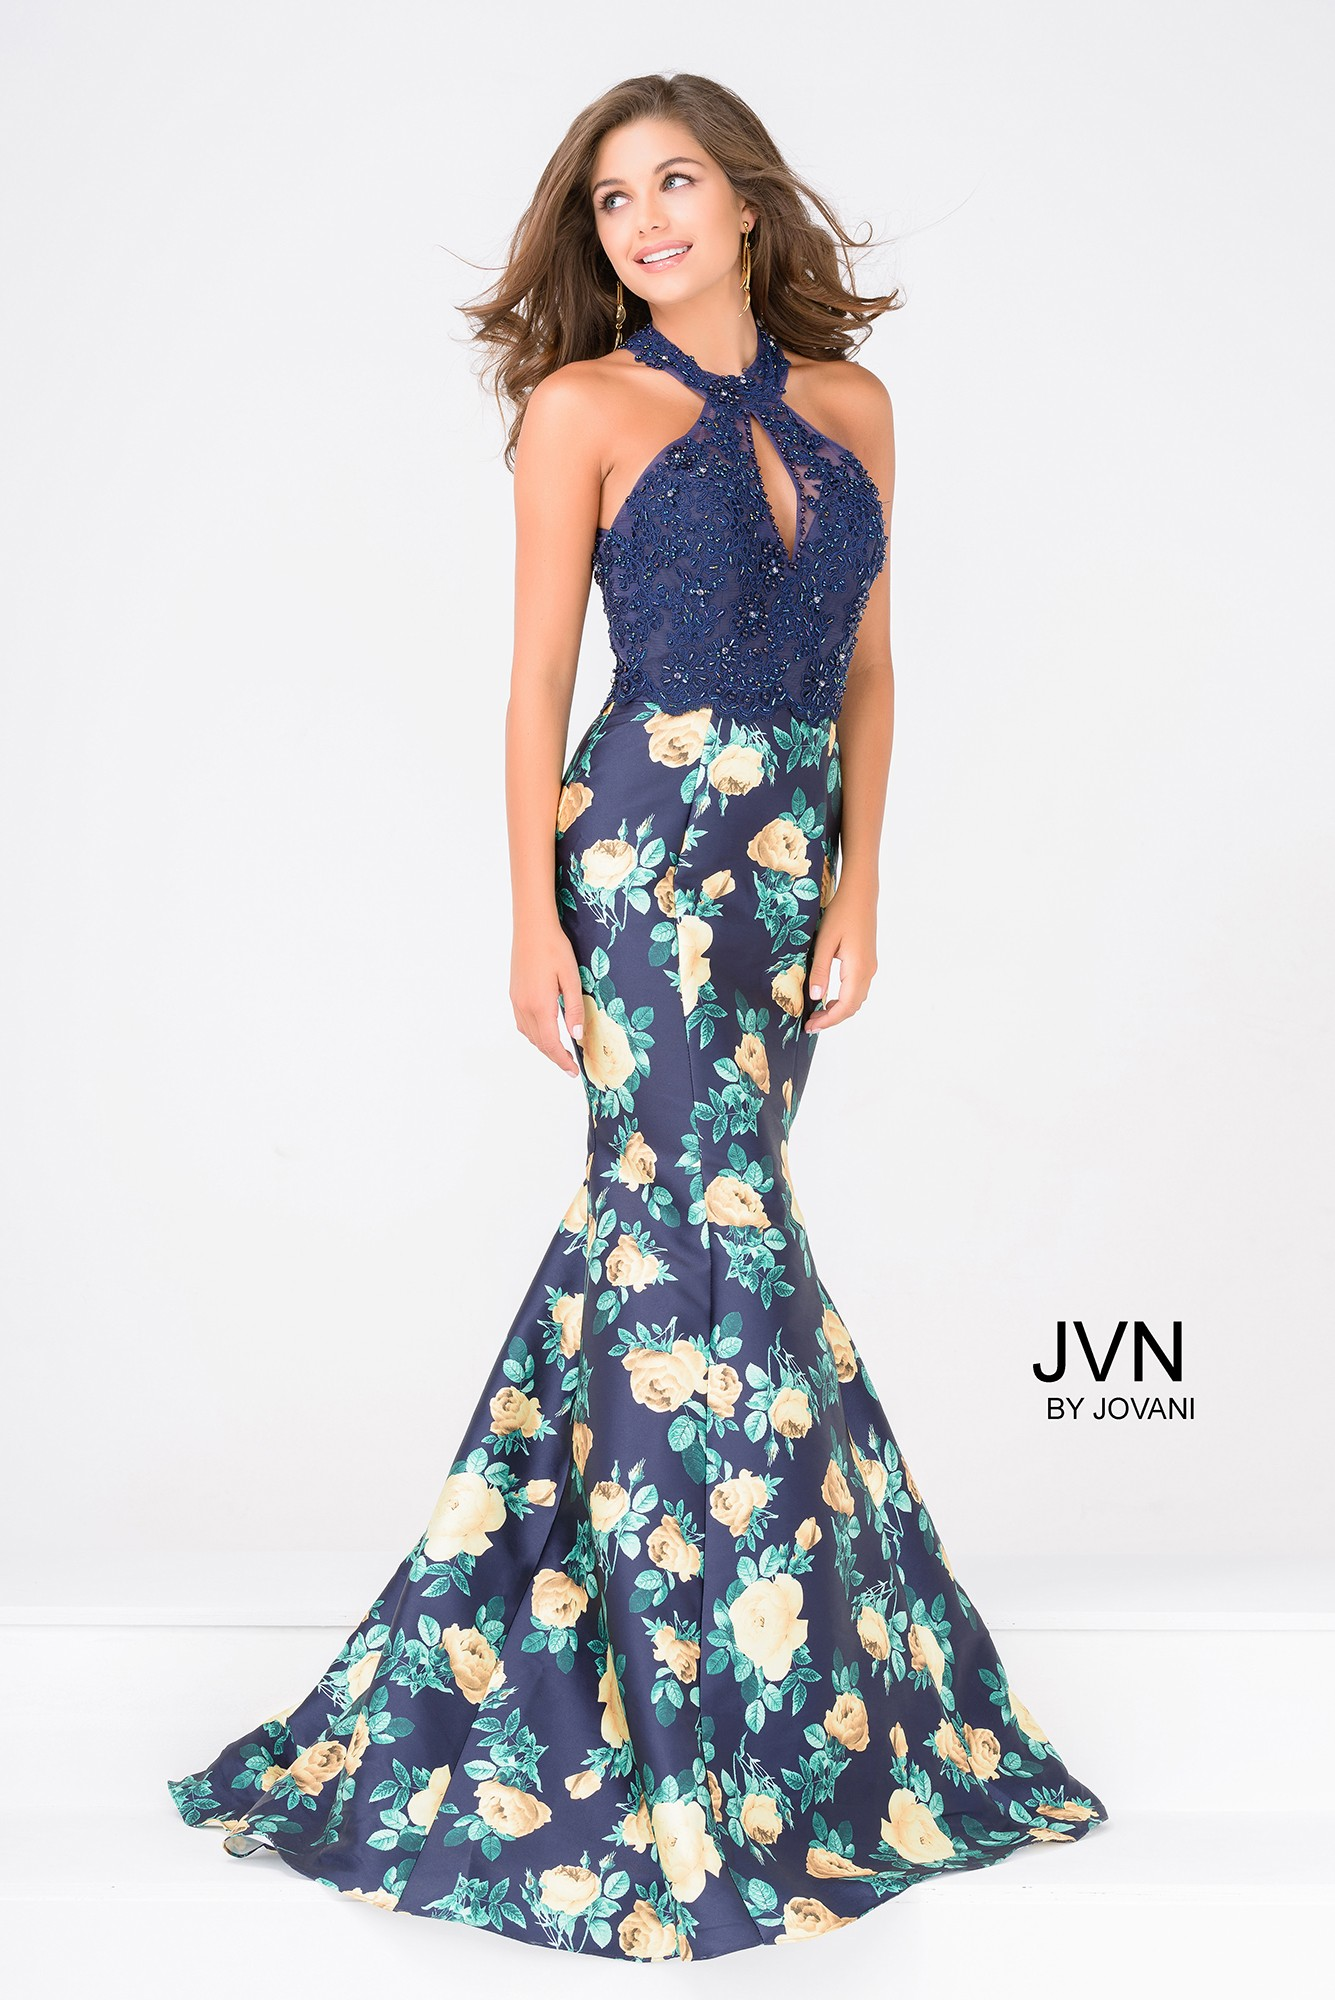 874a202f8a6e7 JVN by Jovani JVN47610 Floral Mermaid Gown with Lace Halter Top ...